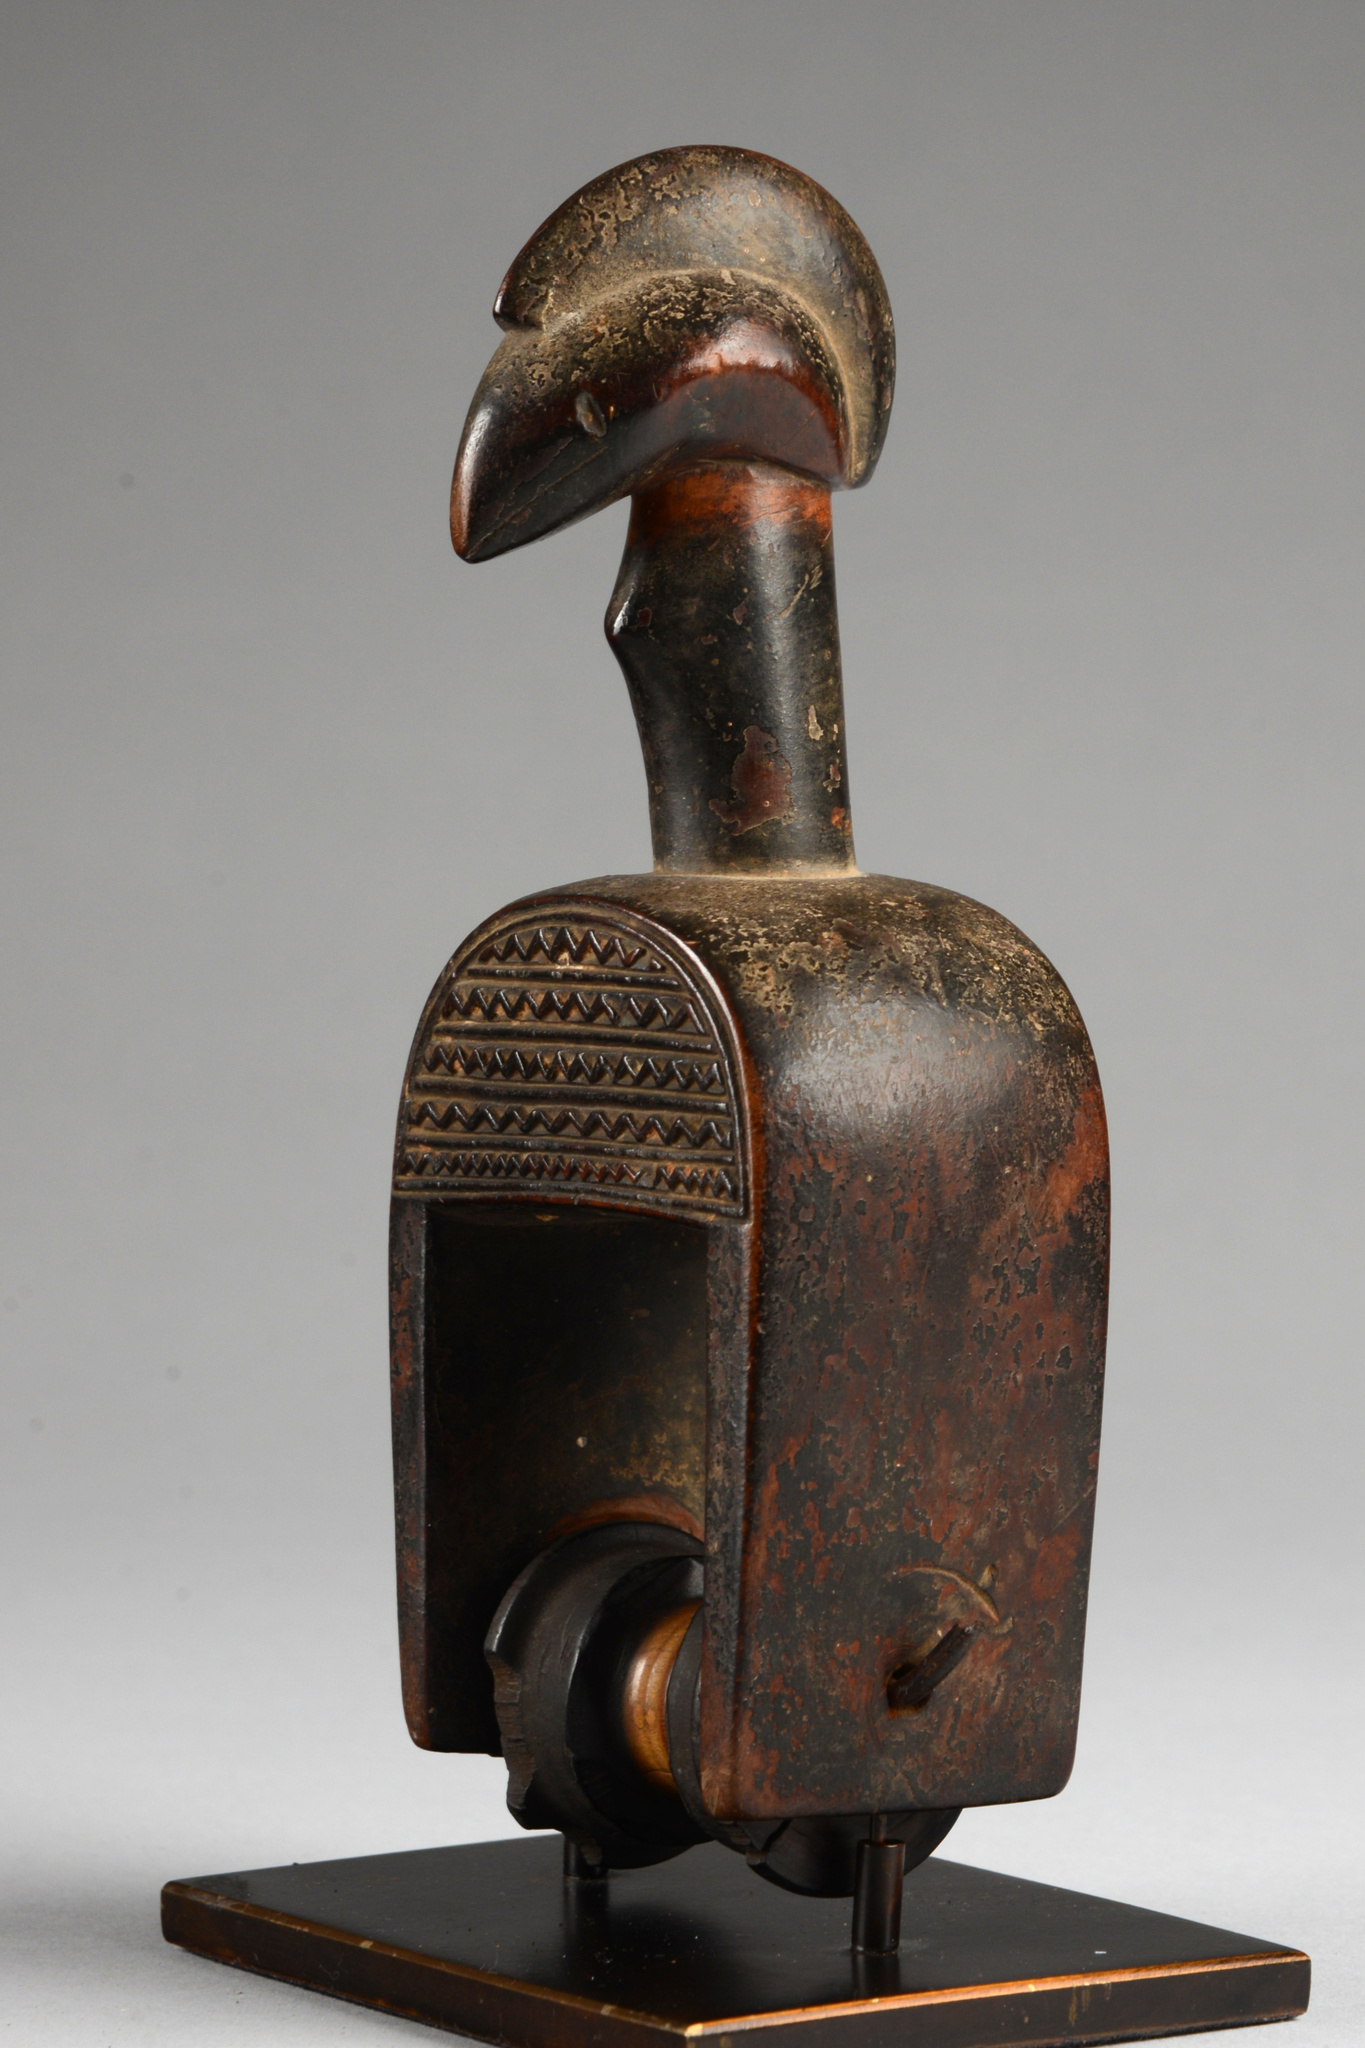 """Heddle pulley with bird head """"kwora-ti-kotolo"""""""